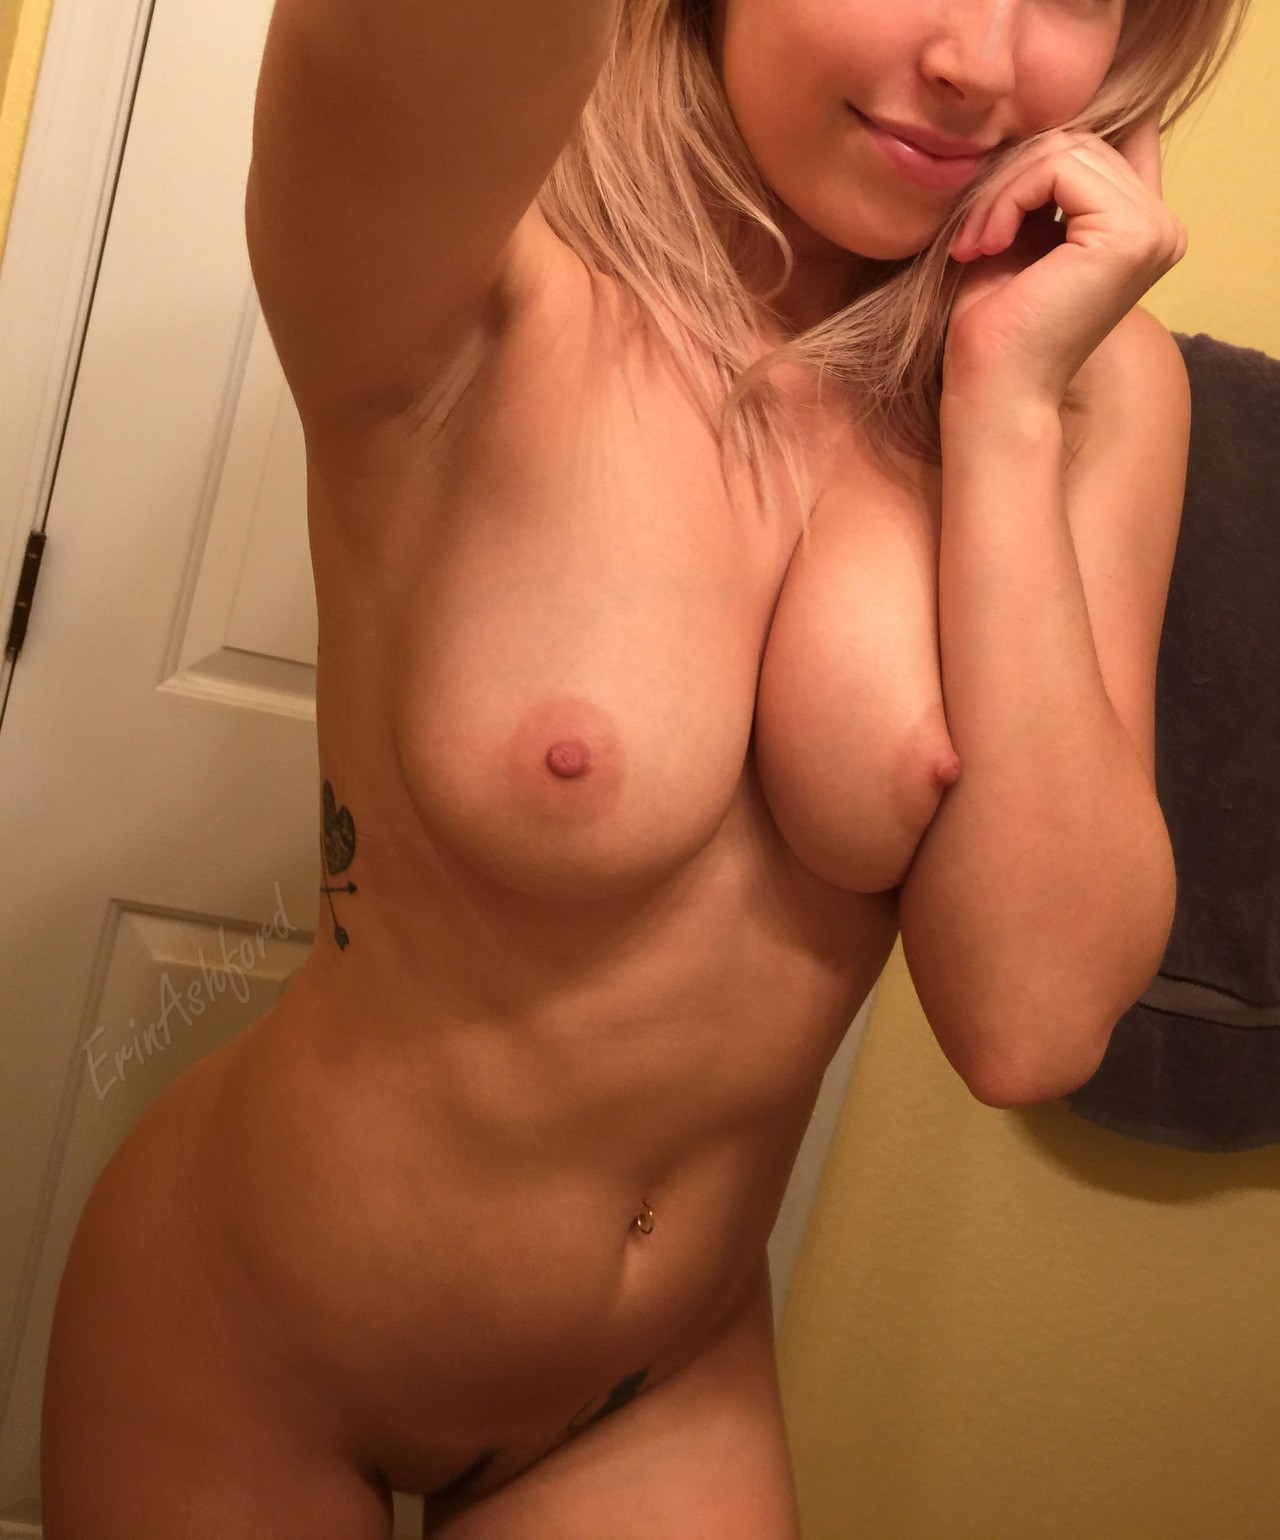 💋💜 No Condom only Cock, Fuck me right now 💋💜